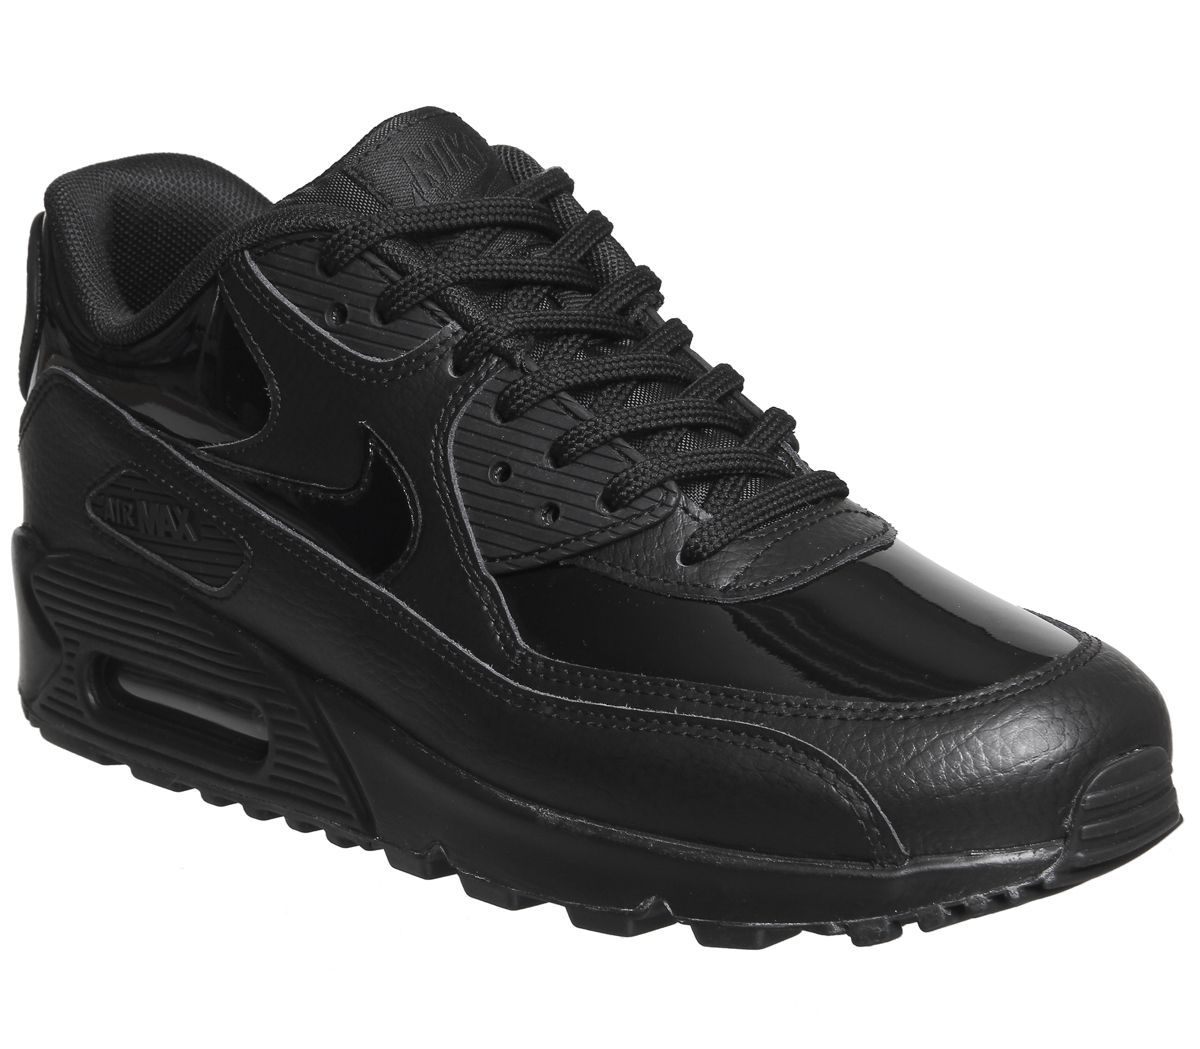 8869745902 Nike Air Max 90 Trainers Black Patent - Unisex Sports